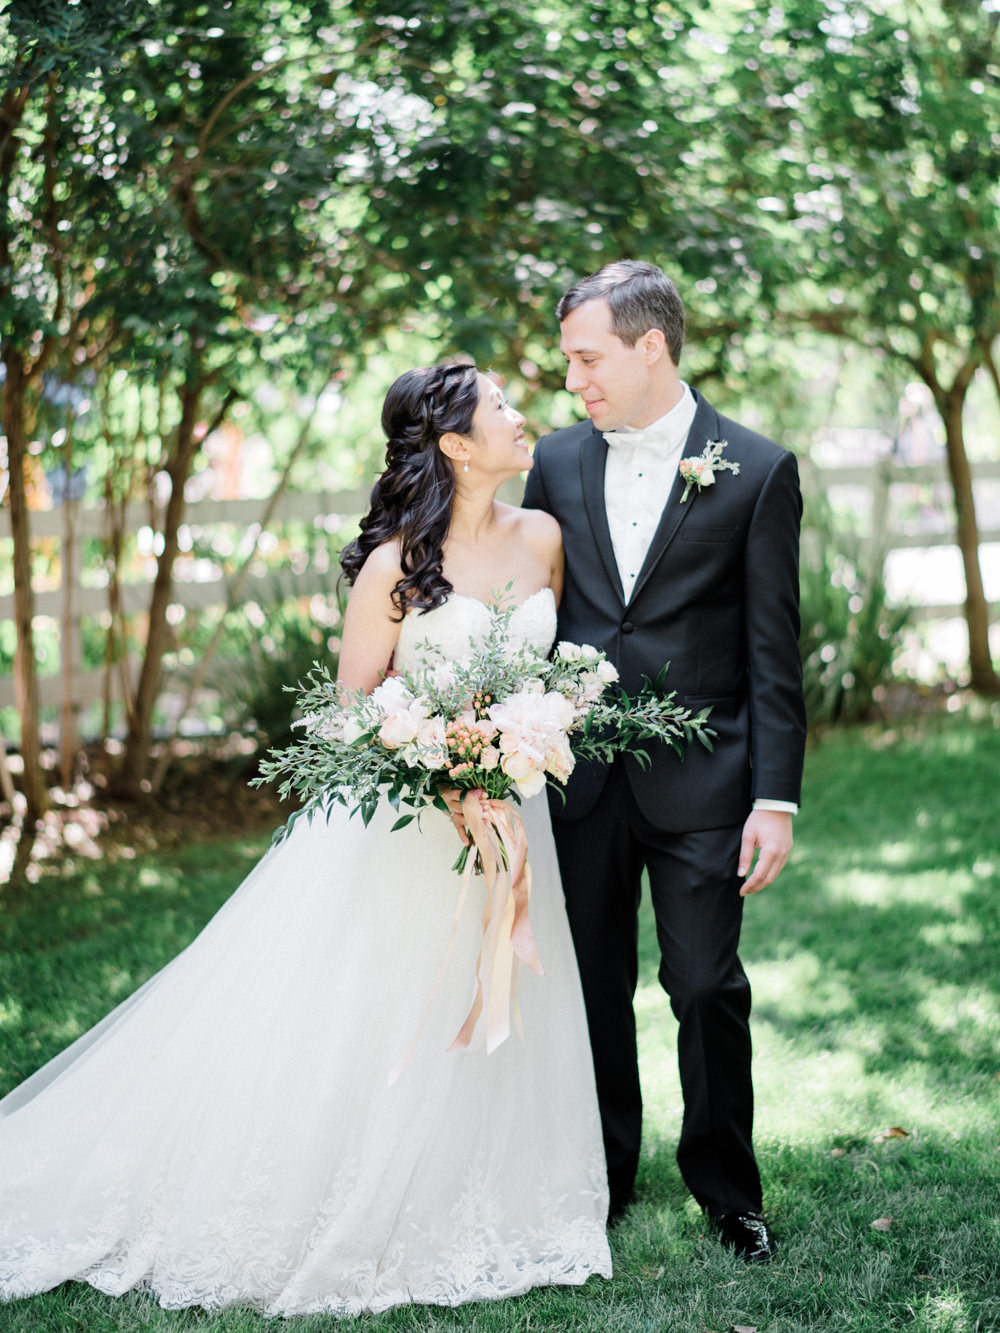 RomanticGardenWedding_WhiskersandWillow_039.jpg